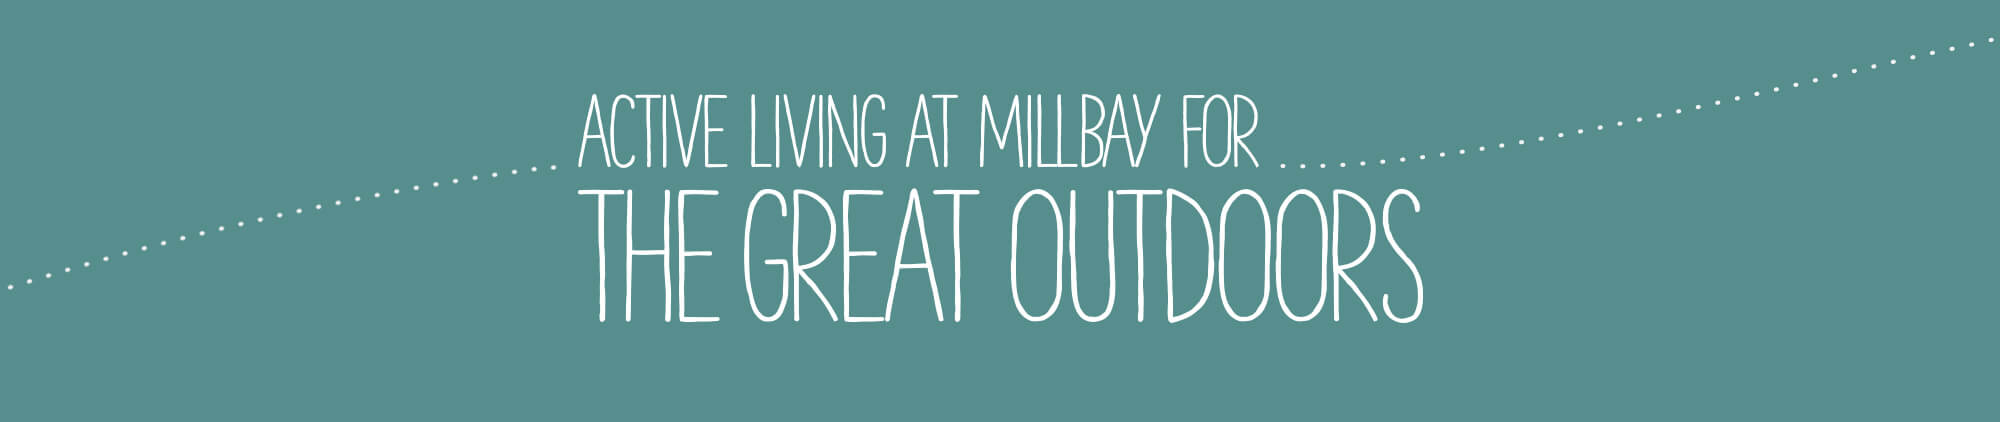 Active living at Millbay Plymouth.